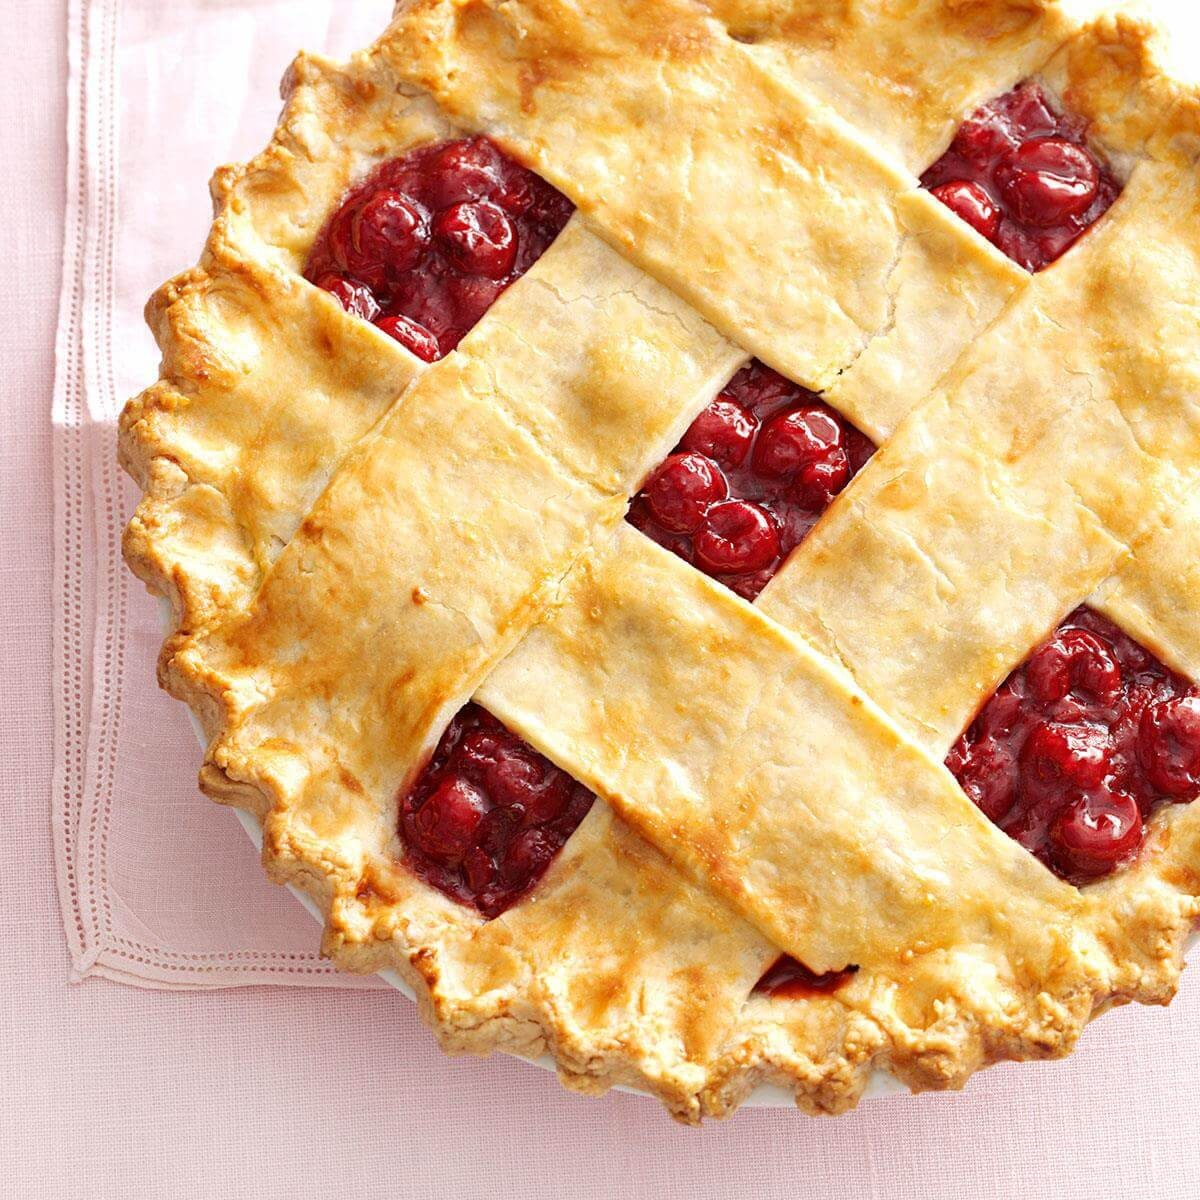 Tart Cherry Lattice Pie on a pink tablecloth.